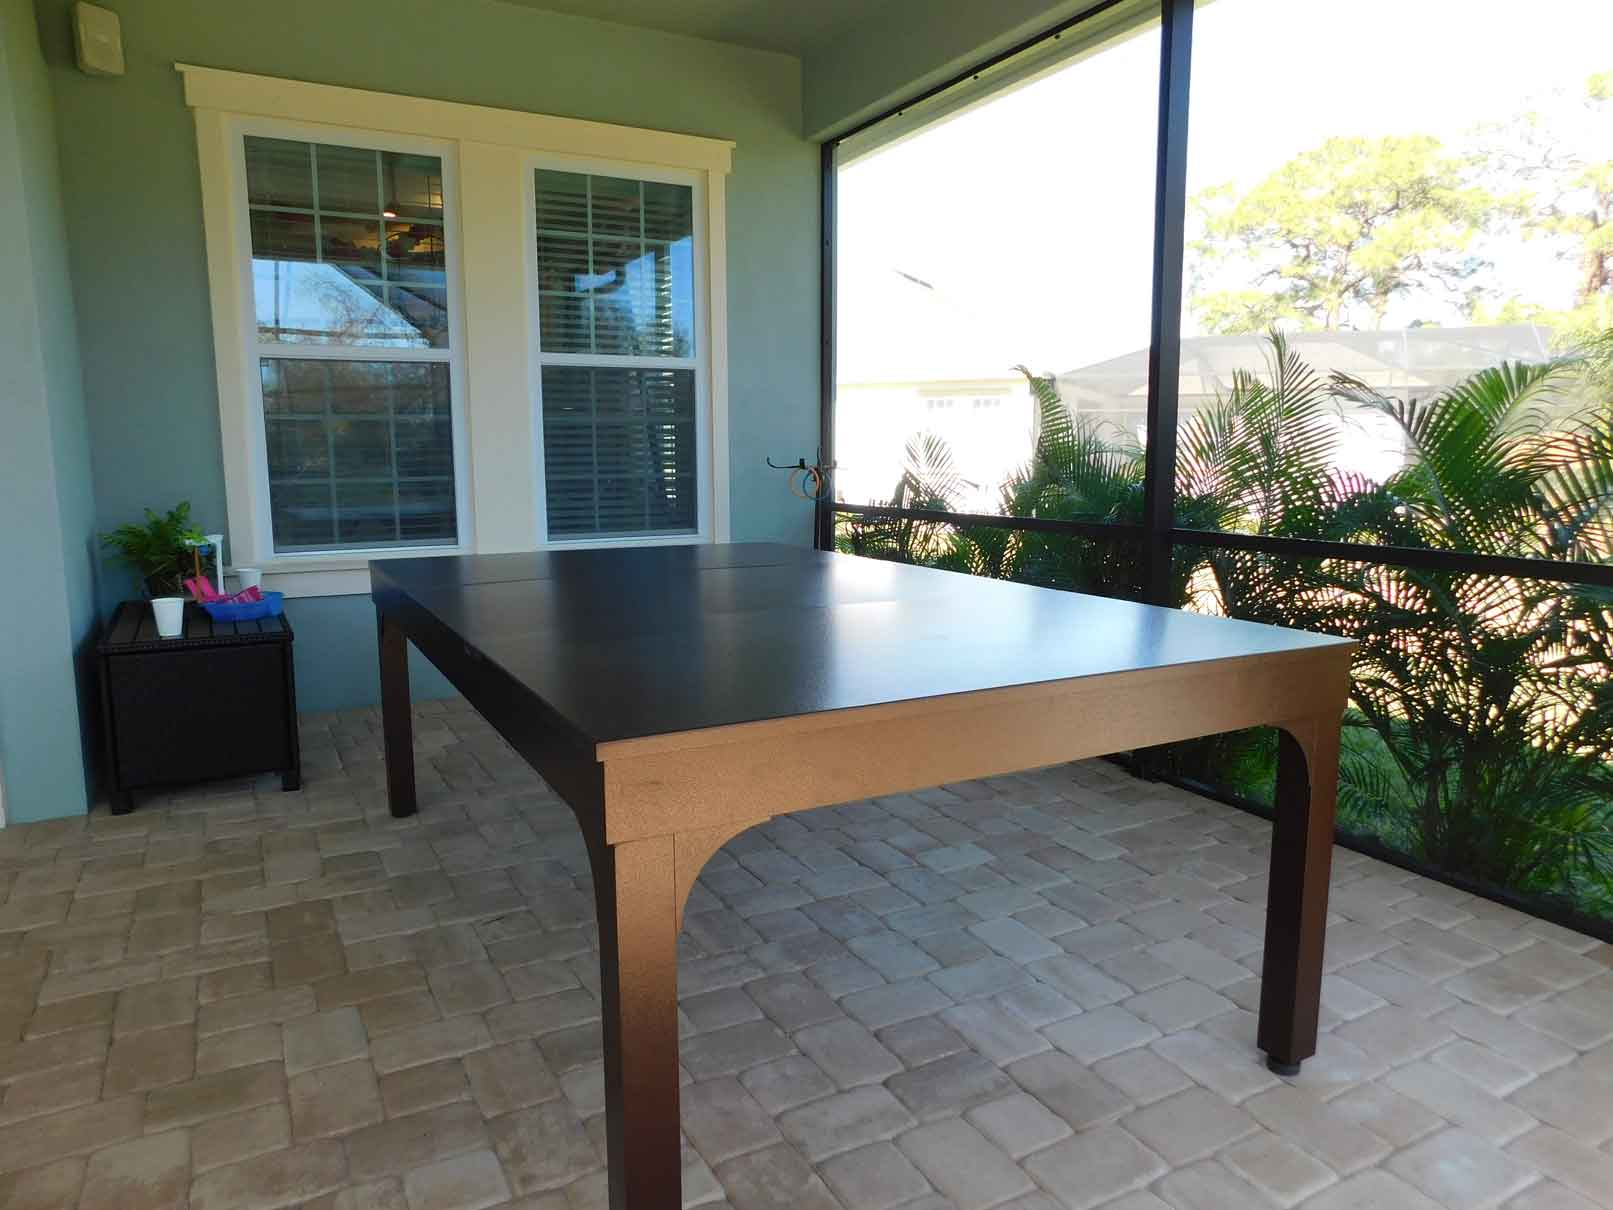 Custom outdoor pool table with dining conversion top from R&R Outdoors All Weather Billiards